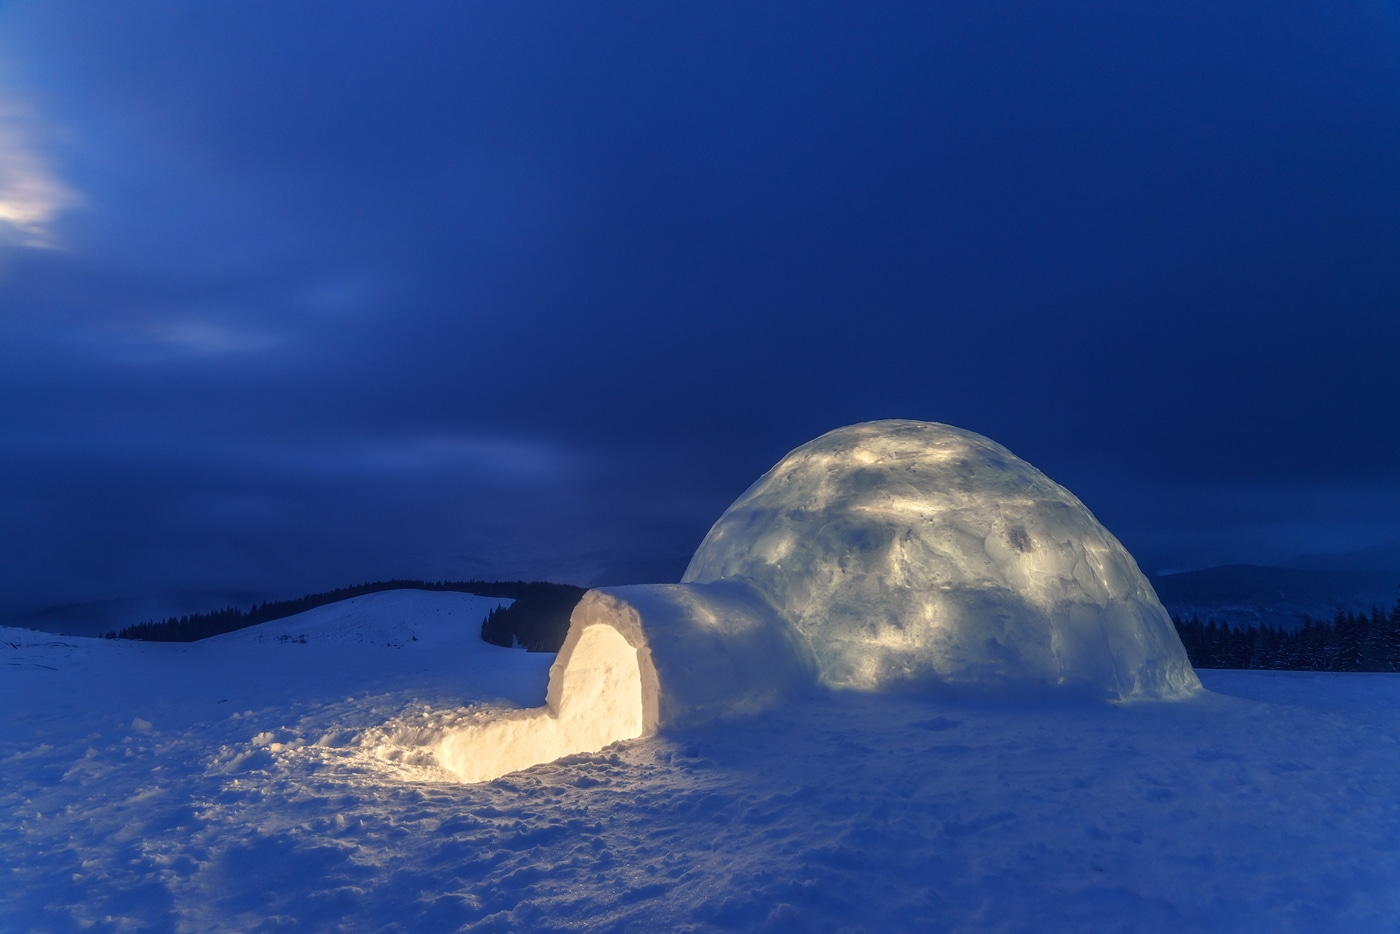 Igloo 20 travel bucket list ideas to do before 40 20 Travel Bucket List Ideas To do before 40 stay in an igloo e31b